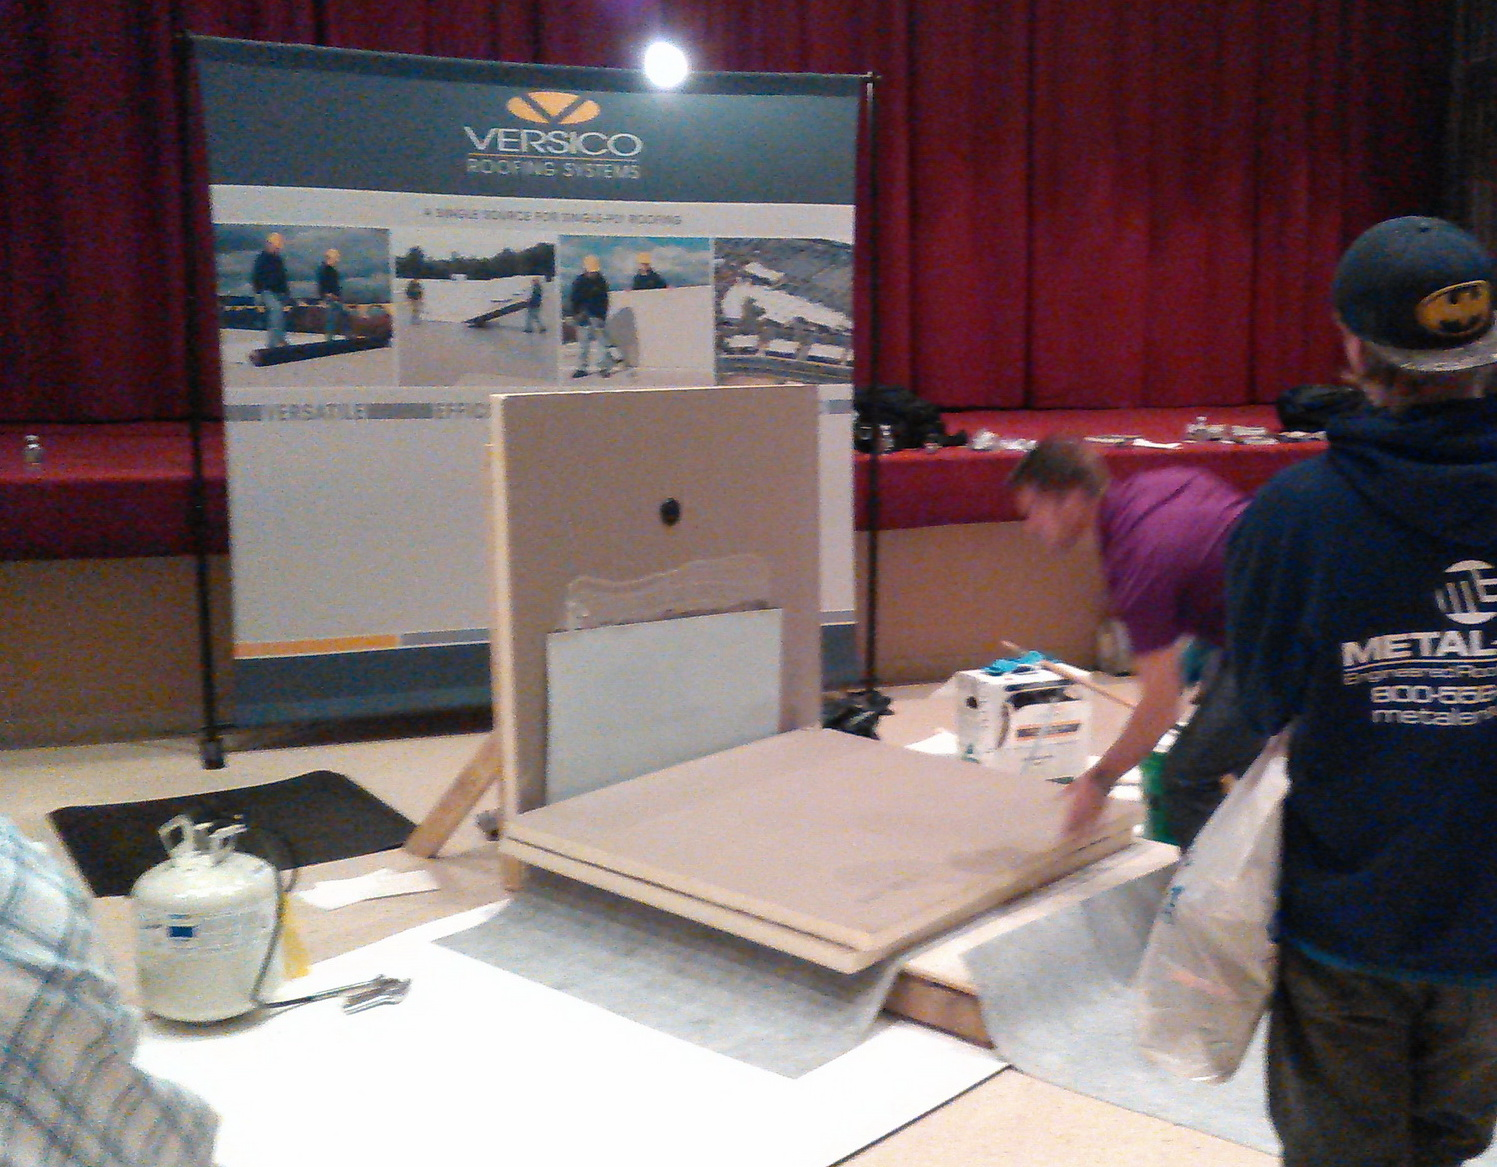 Roofing manufacturers attending a trade show